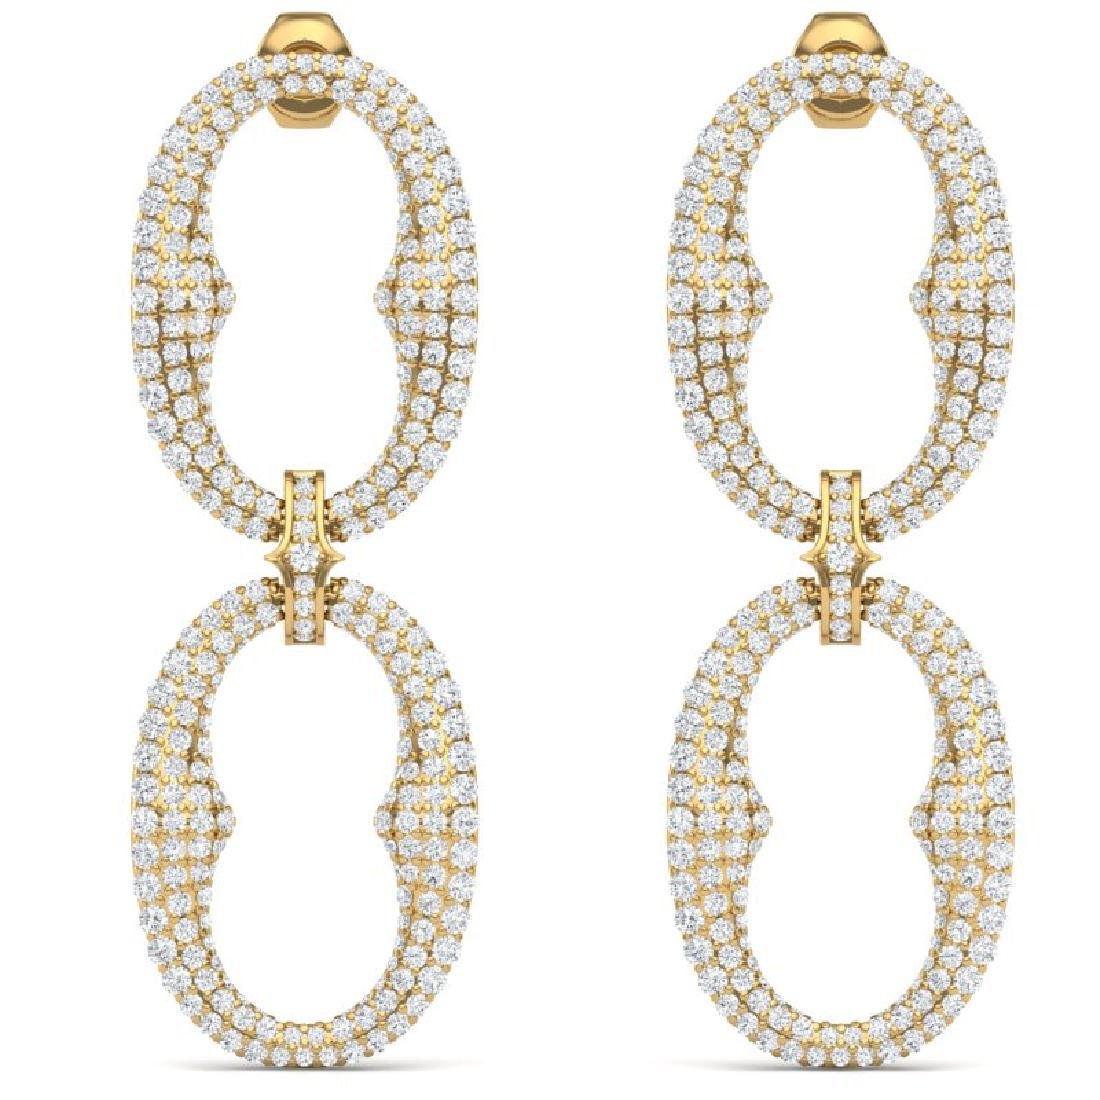 7 CTW Certified VS/SI Diamond Earrings 18K Yellow Gold - 3